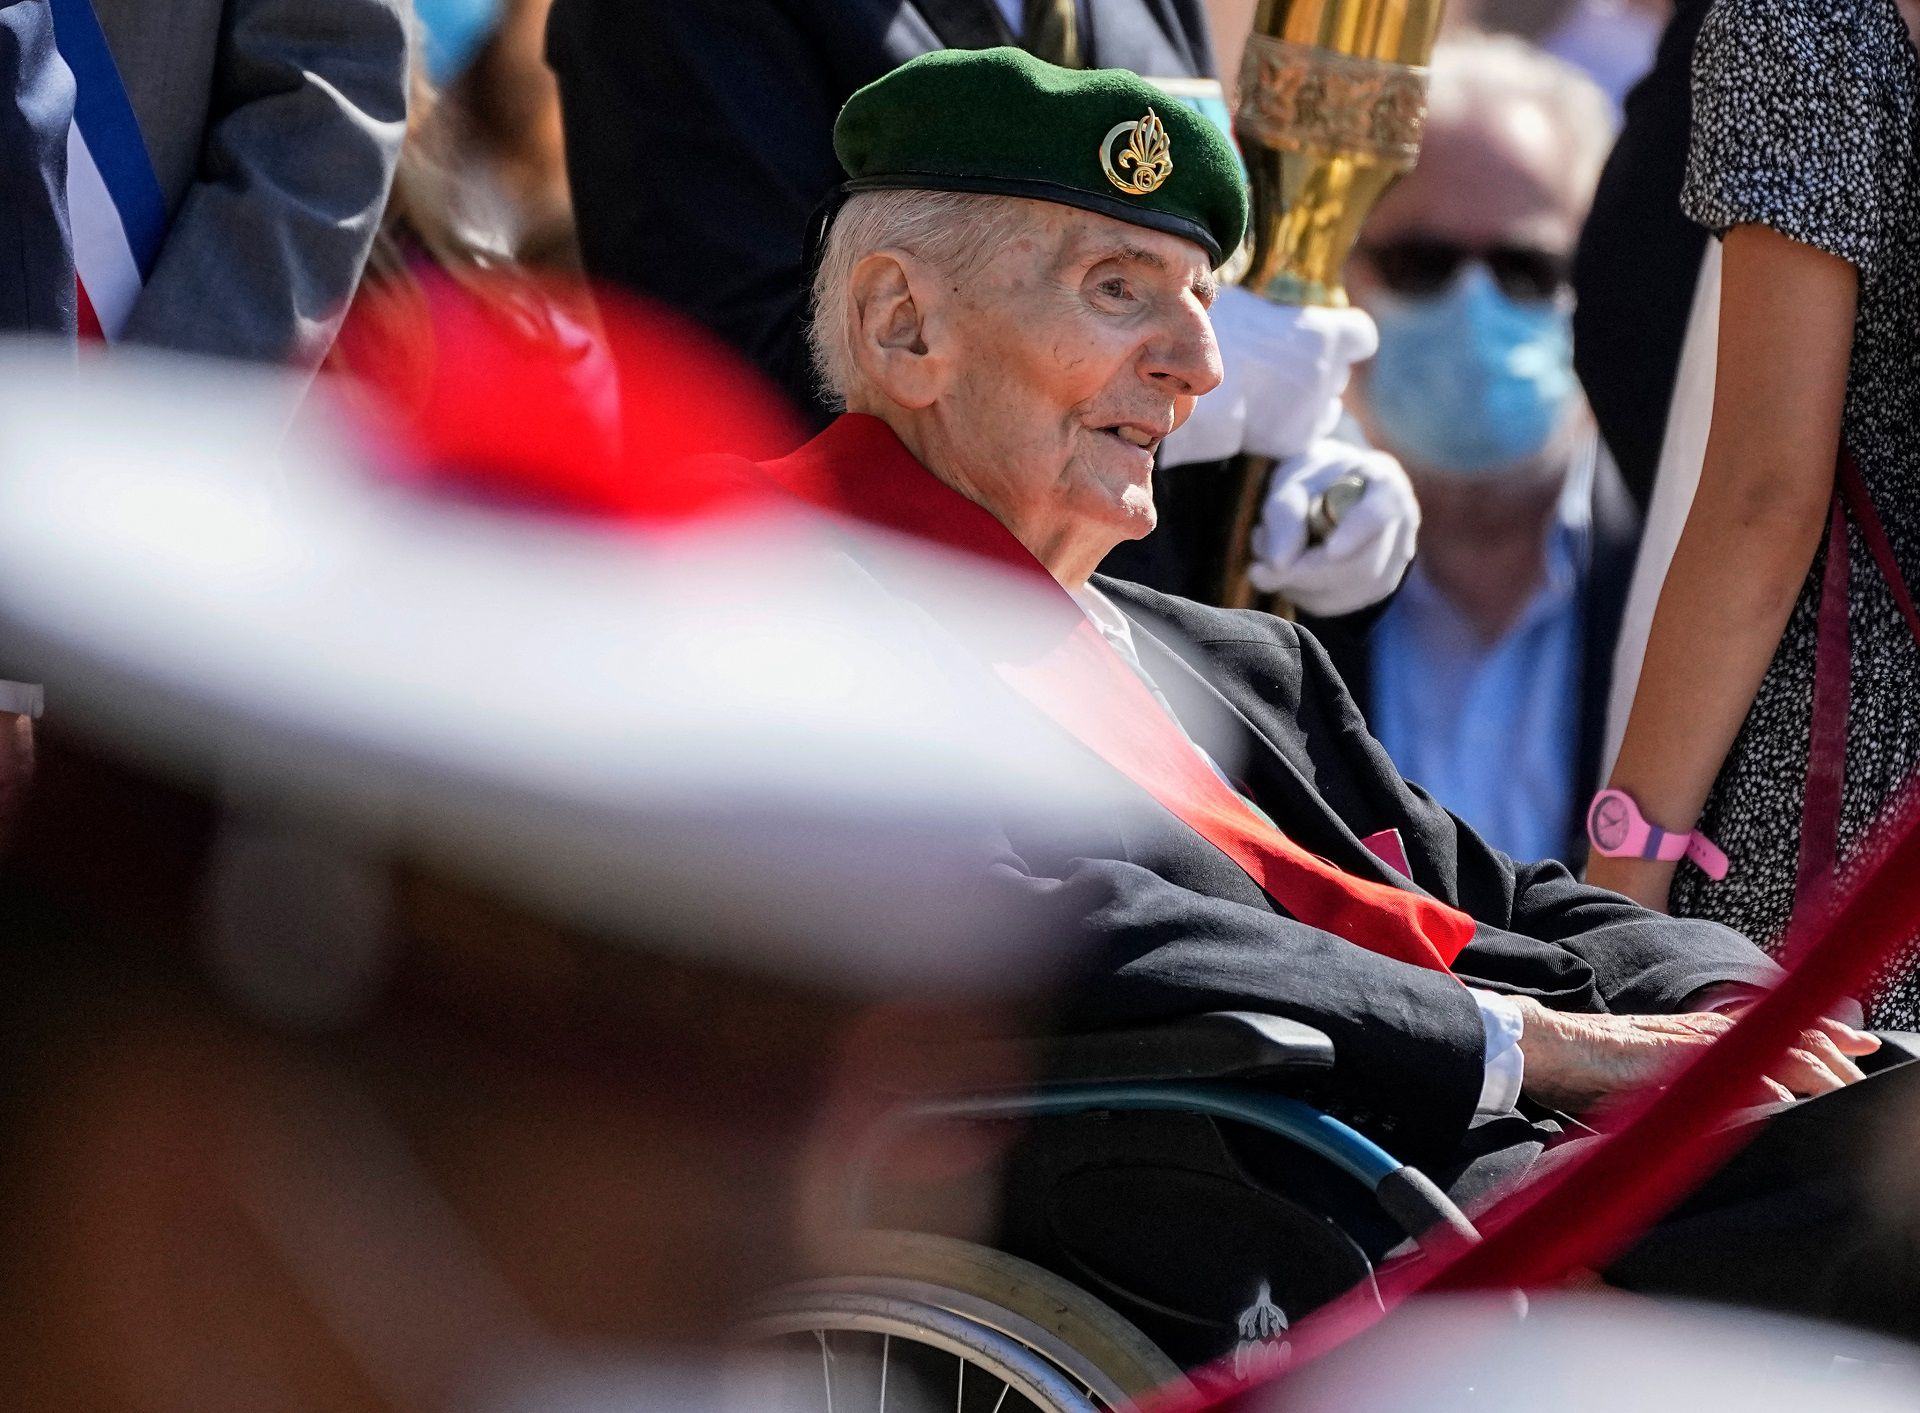 """(FILES) In this file photo taken on June 18, 2021 Hubert Germain, a WWII Resistance fighter and the last """"Compagnon de la Liberation"""" attends a ceremony to mark the 81st anniversary of Charles de Gaulle's resistance call from London at the Mont Valerien, in Suresnes, near Paris. - Hubert Germain, who was the last surviving Liberation companion, died at the age of 101, French Defense Minister announced on October 12, 2021. (Photo by Michel Euler / POOL / AFP)"""